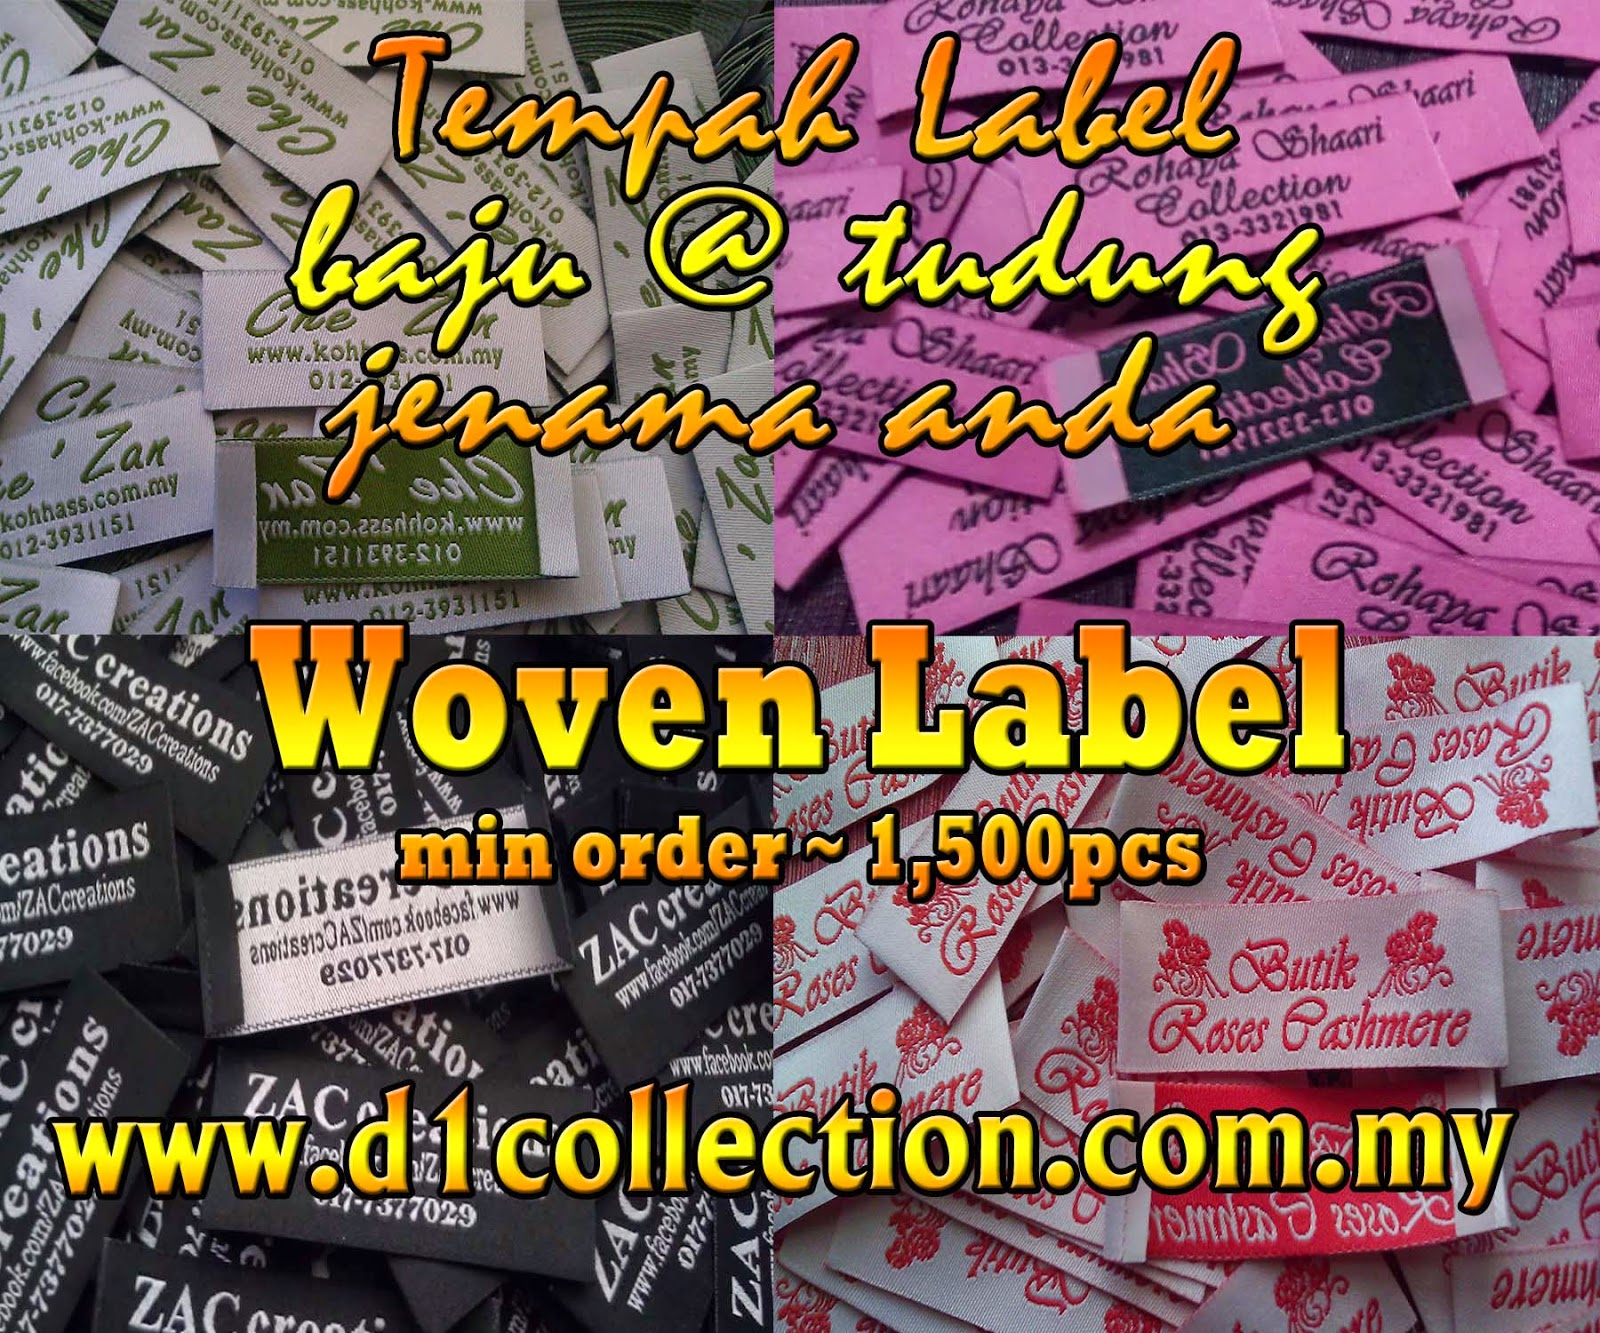 http://www.d1collection.com.my/search/label/Koleksi%20Woven%20Label